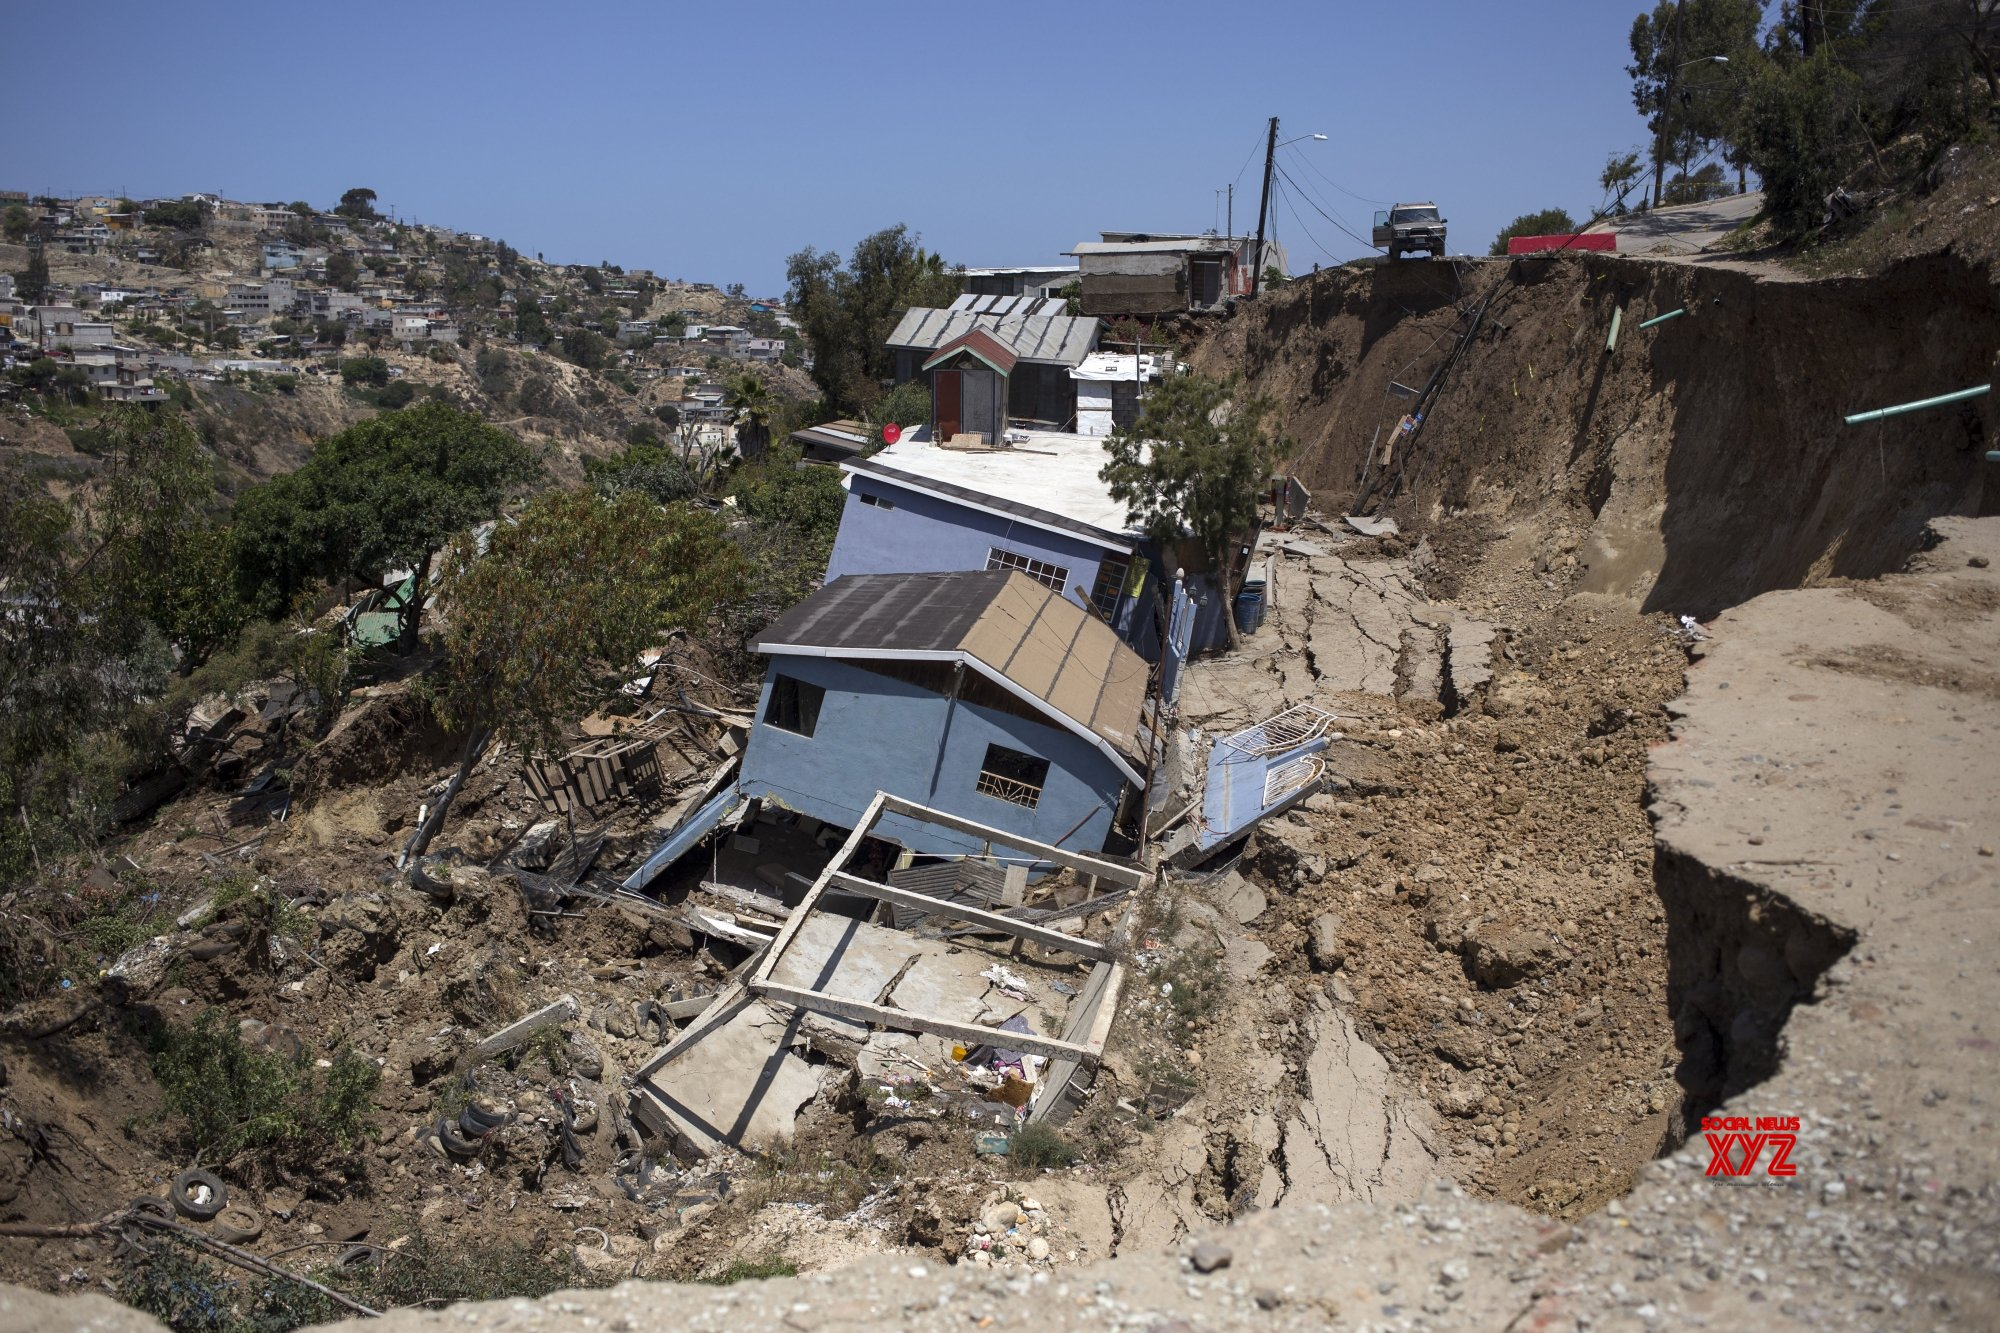 Mudslide in Mexico leaves at least 7 dead